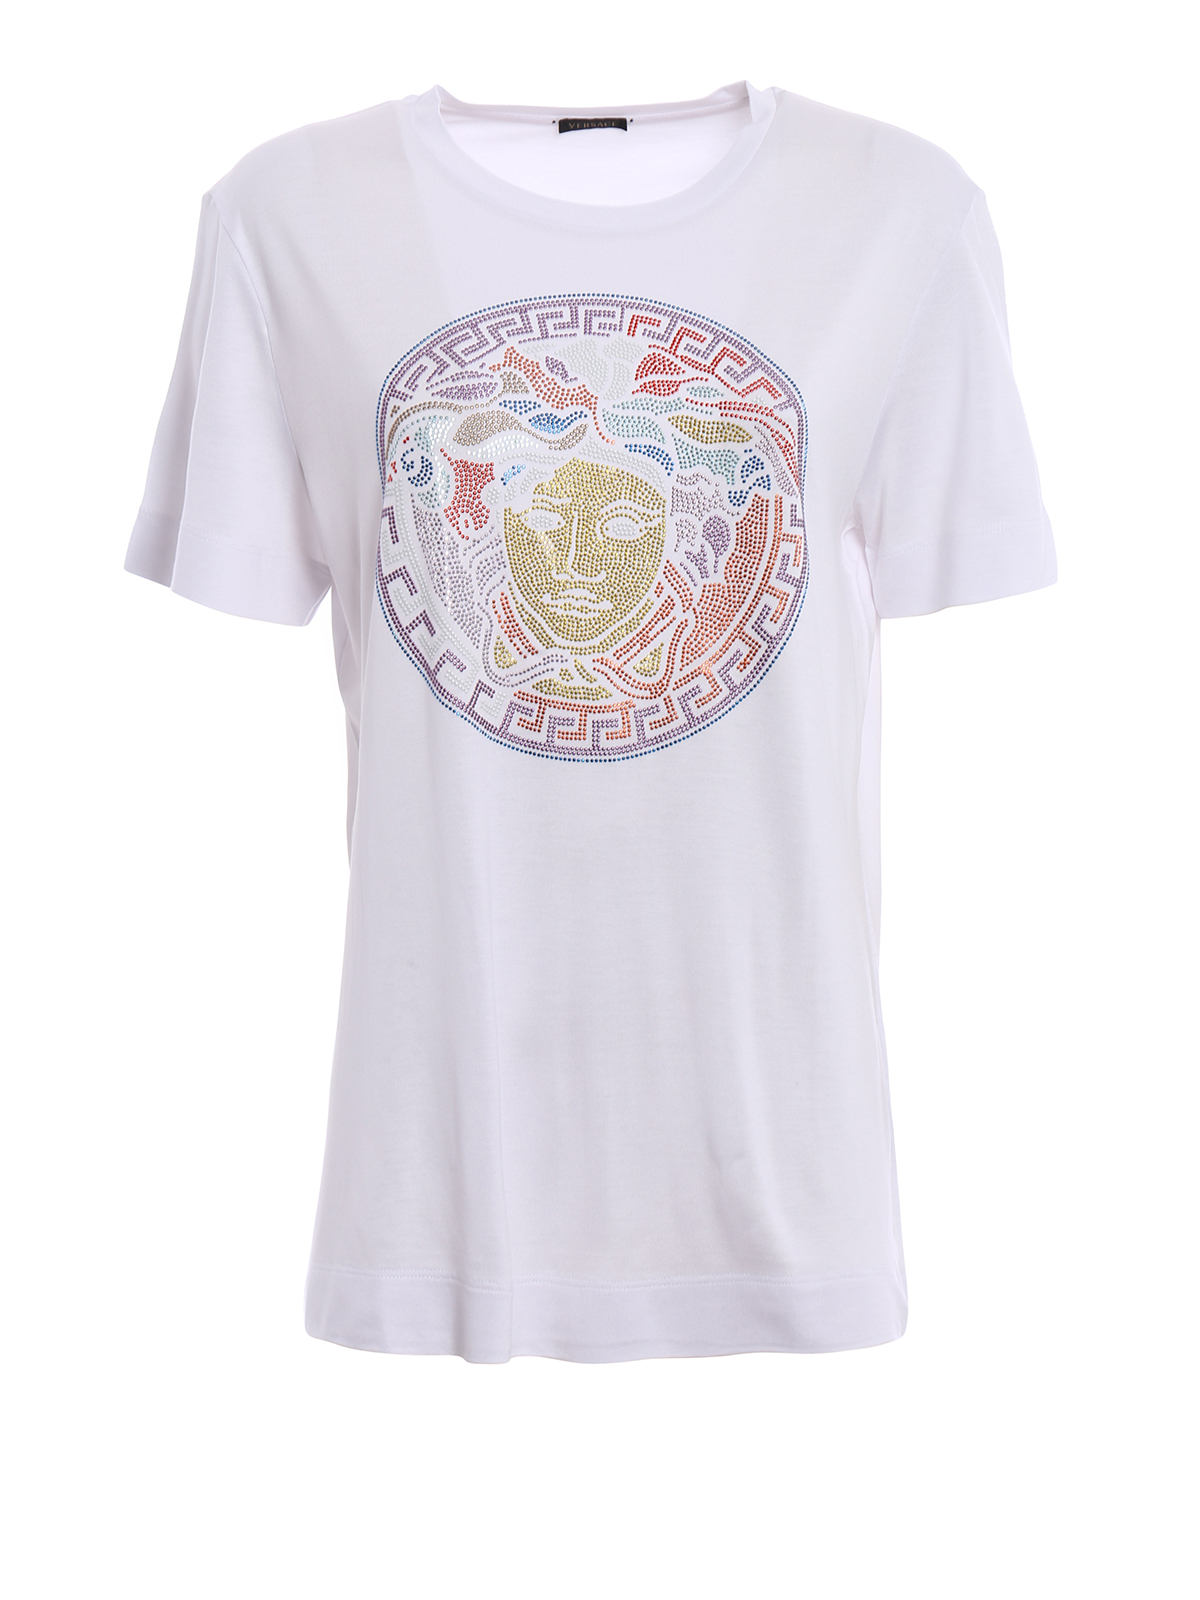 Embellished Medusa Head T-shirt by Versace - t-shirts | iKRIX